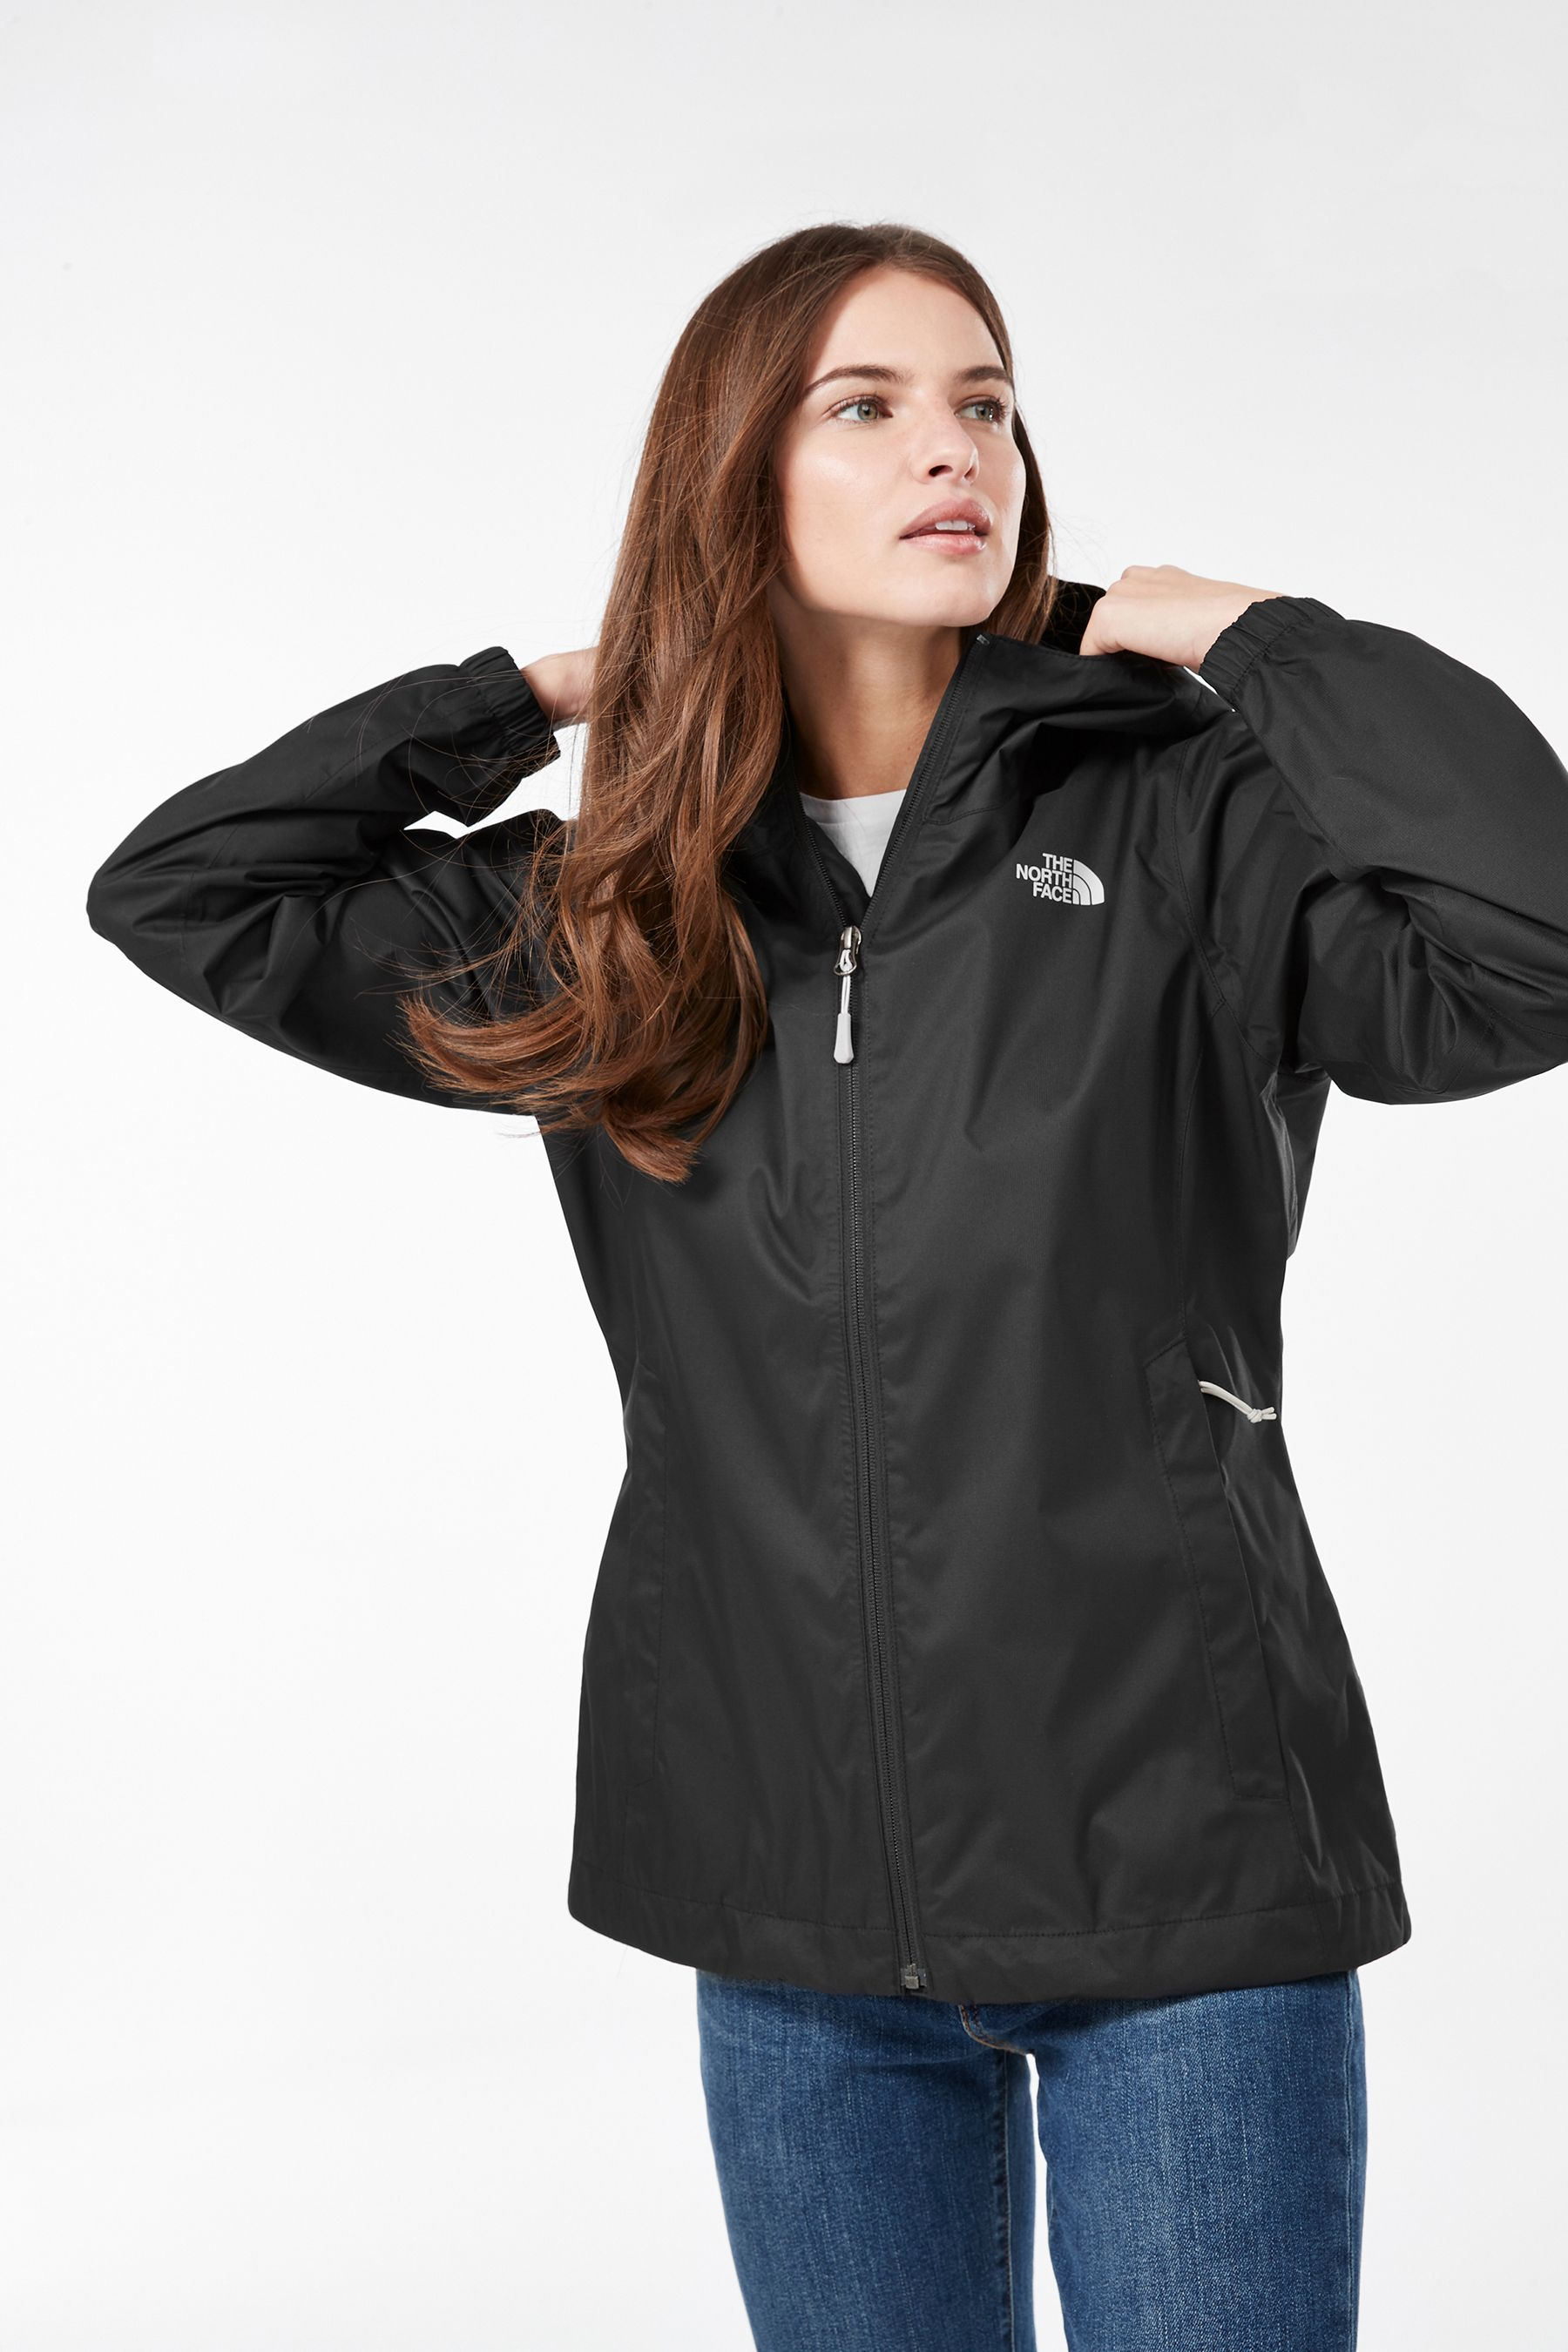 Womens The North Face Quest Jacket Black In 2020 North Face Resolve Jacket The North Face Jackets